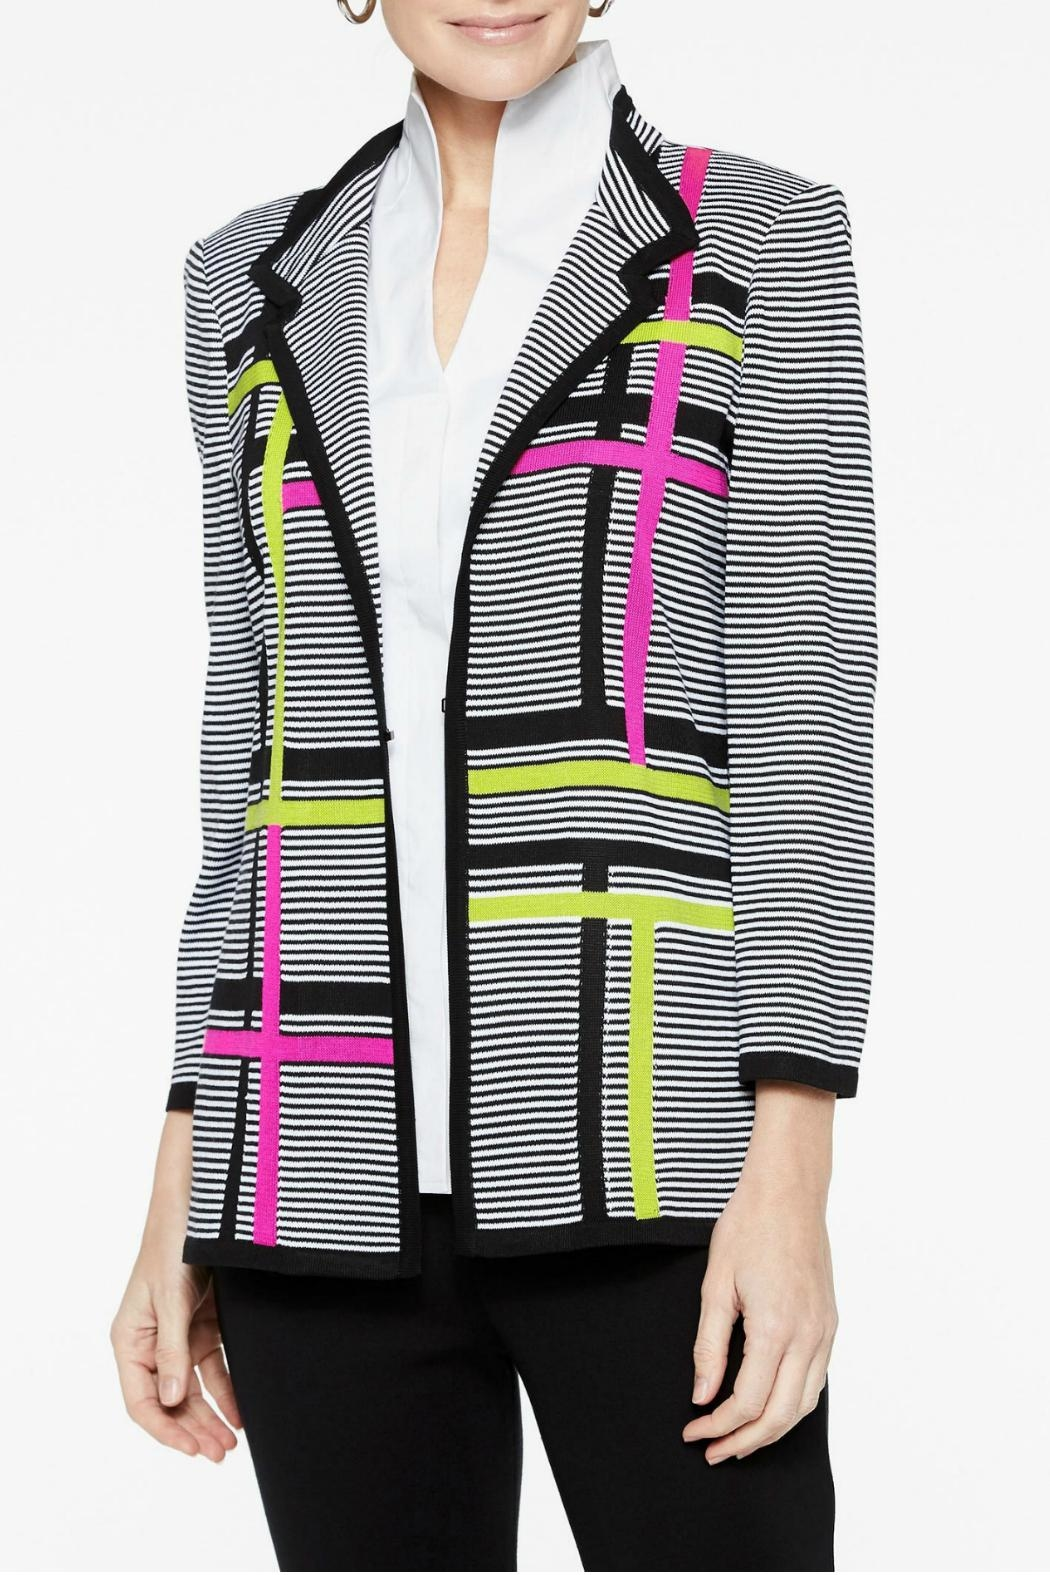 Misook Graphic Stripe Jacket - Main Image